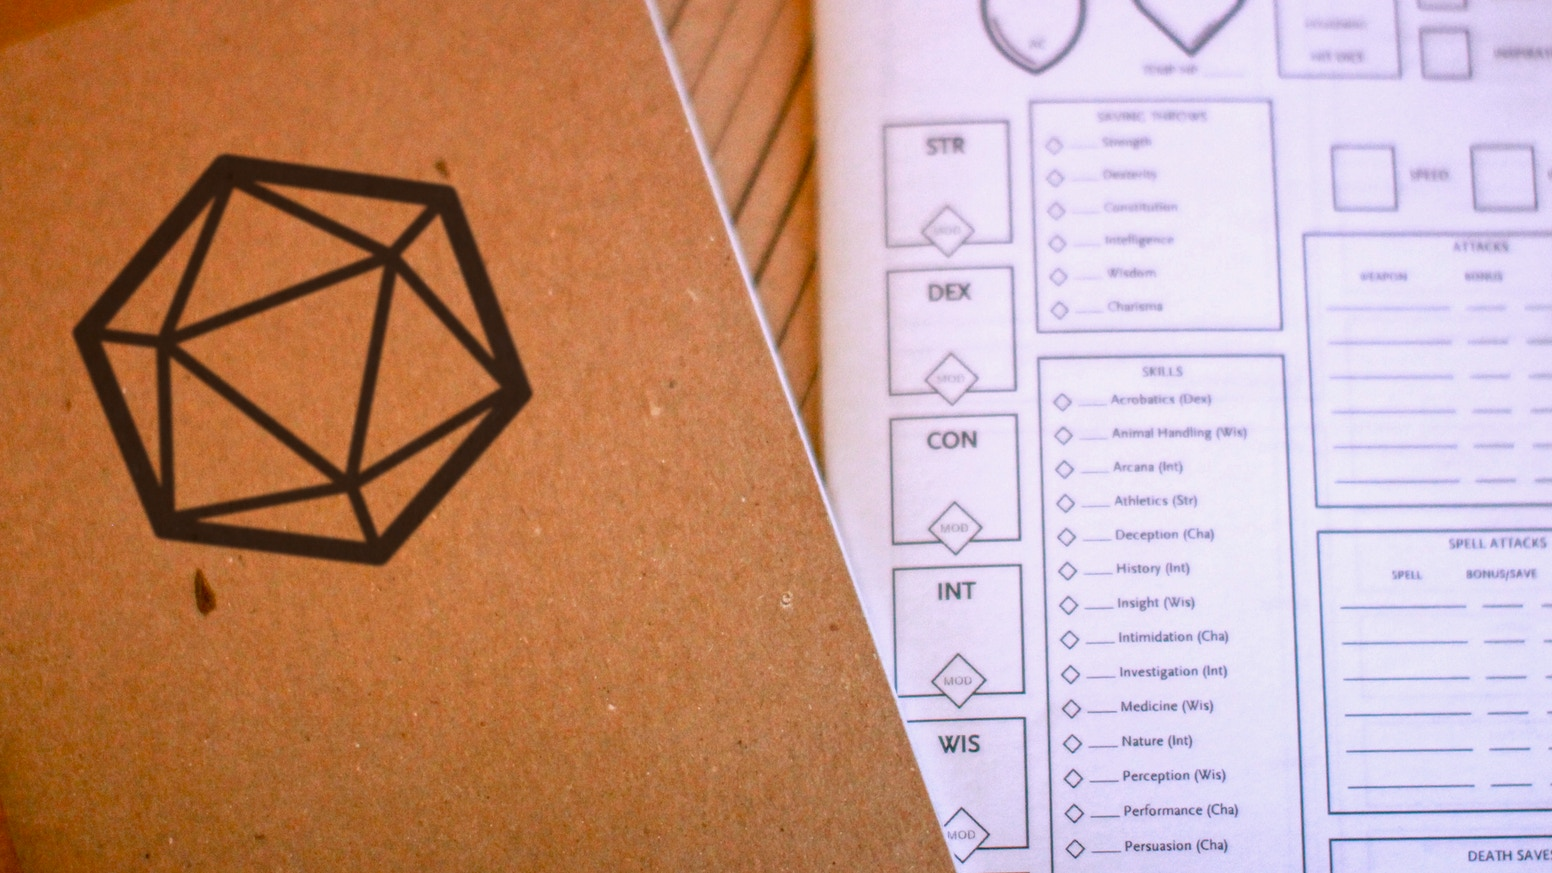 Chronicle the mighty deeds of your RPG character and your epic campaign in this character journal and notebook for tabletop.